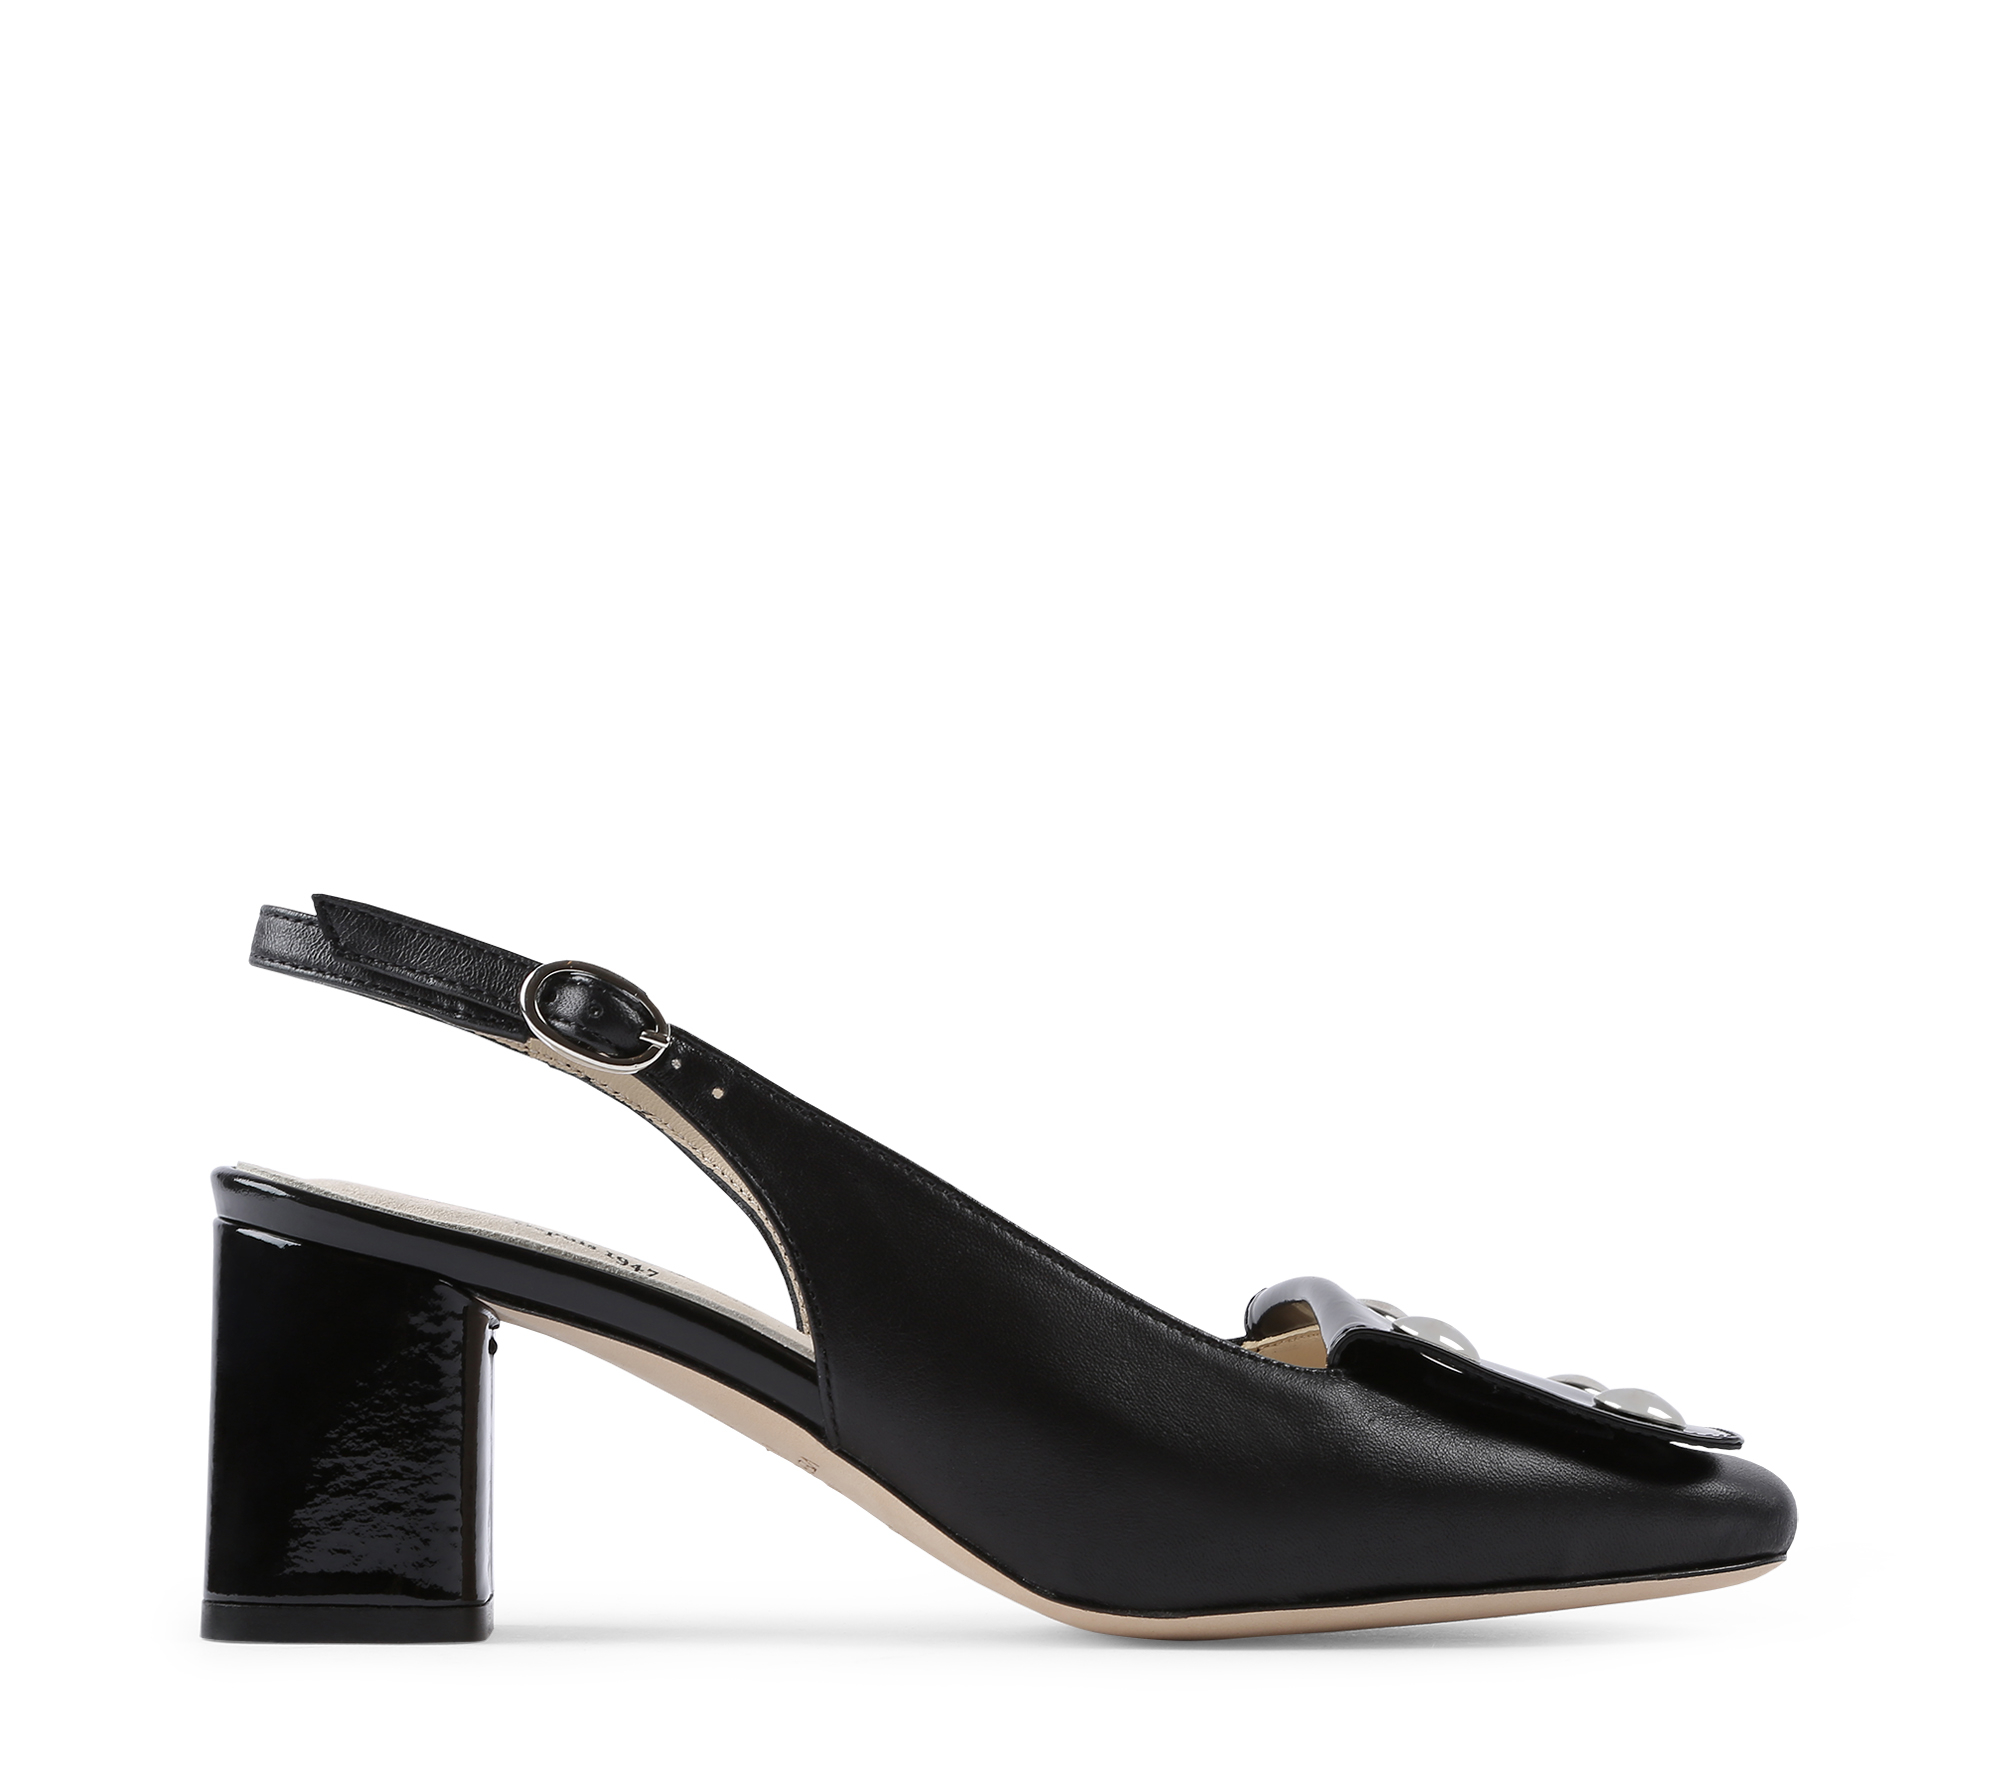 6a5704c11c8 Women Pumps | REPETTO Official | Free delivery for orders over €100